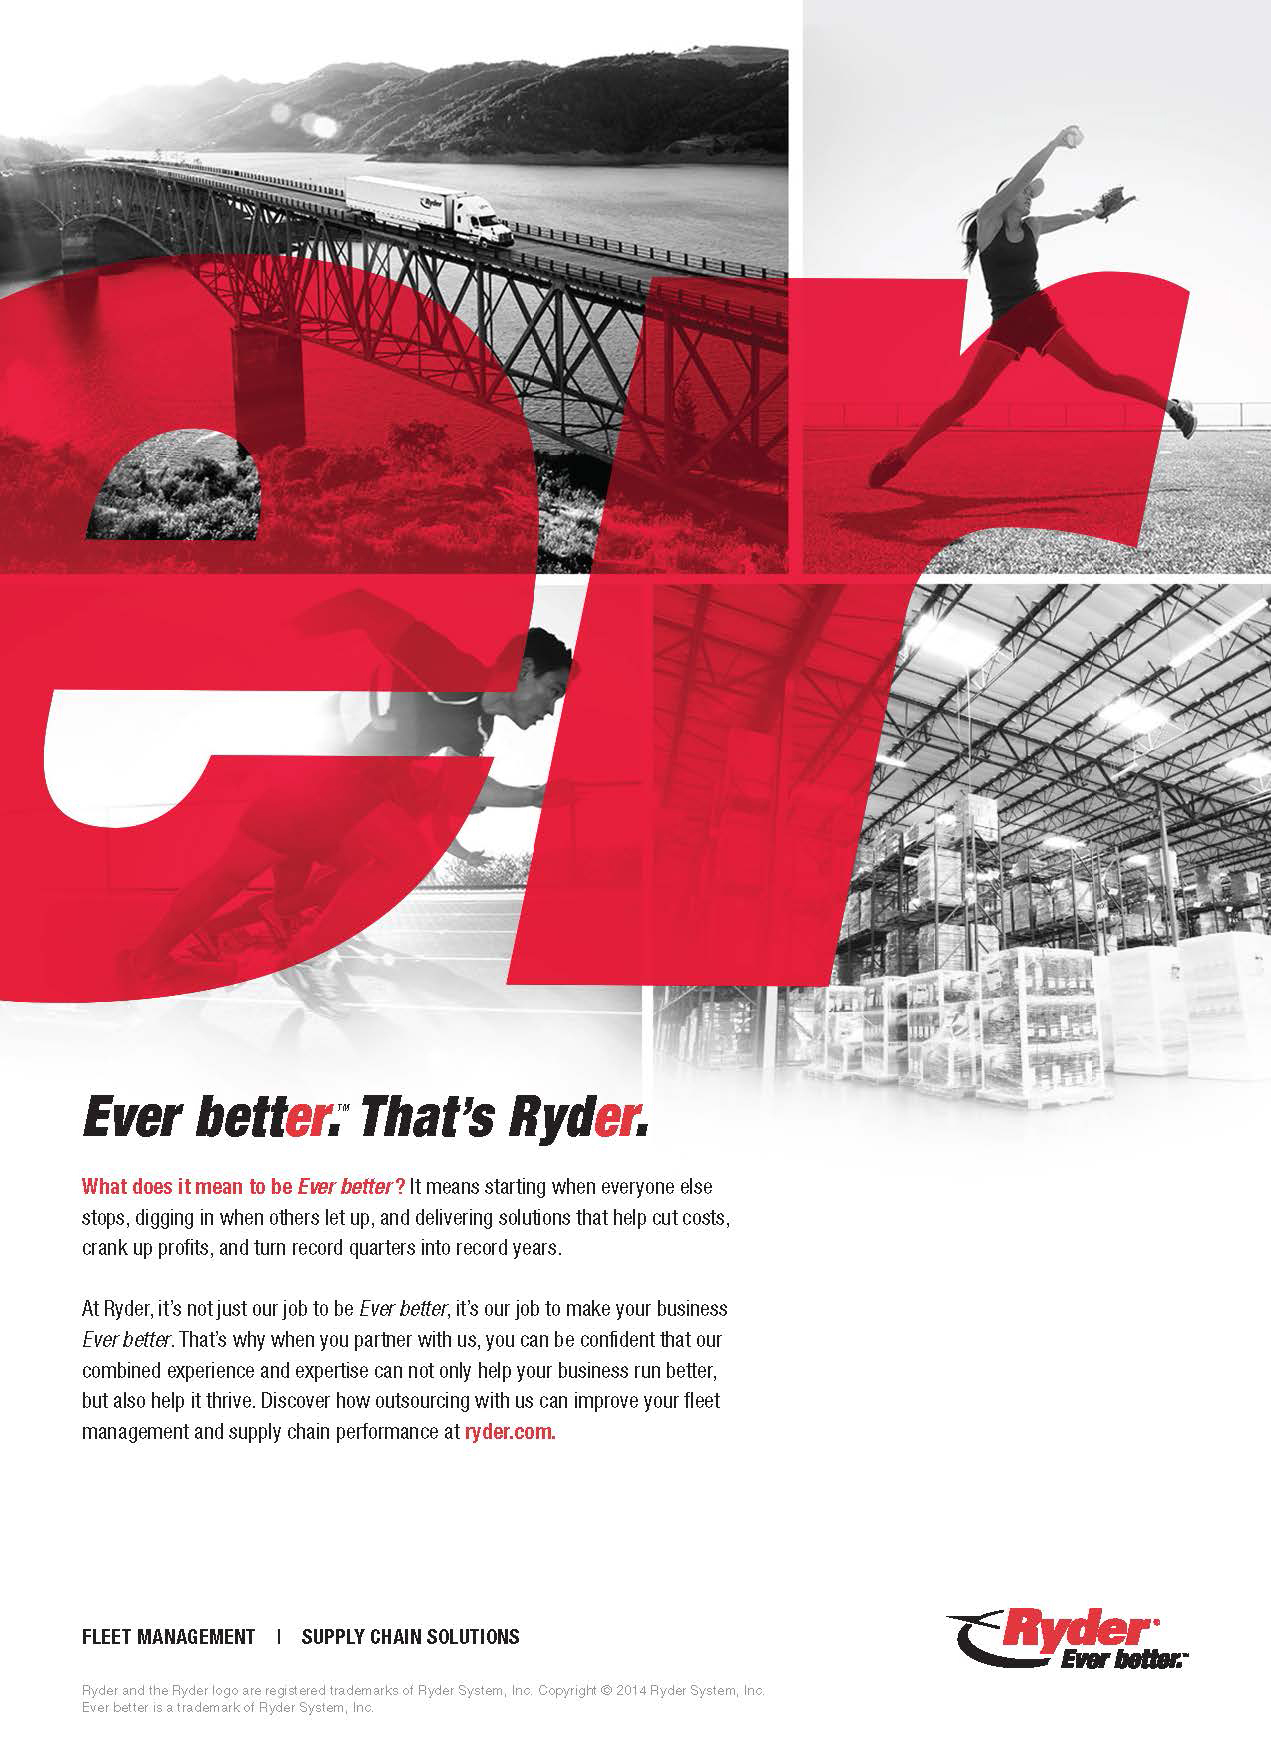 """Ryder """"Ever better"""" launch print ad. (Graphic: Business Wire)"""